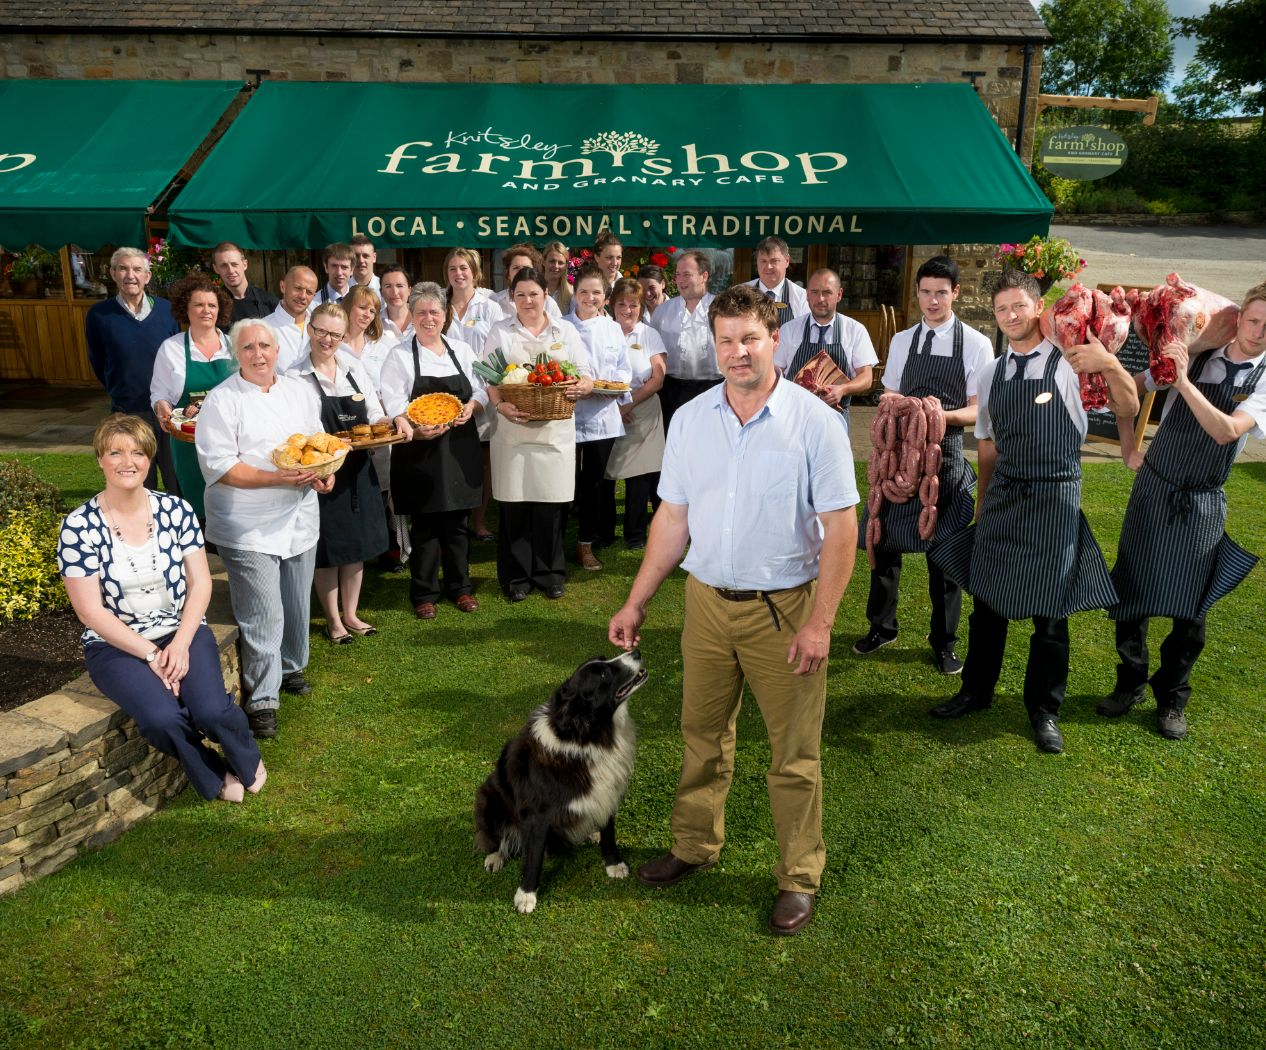 Image of Knitsley Farm Shop Staff